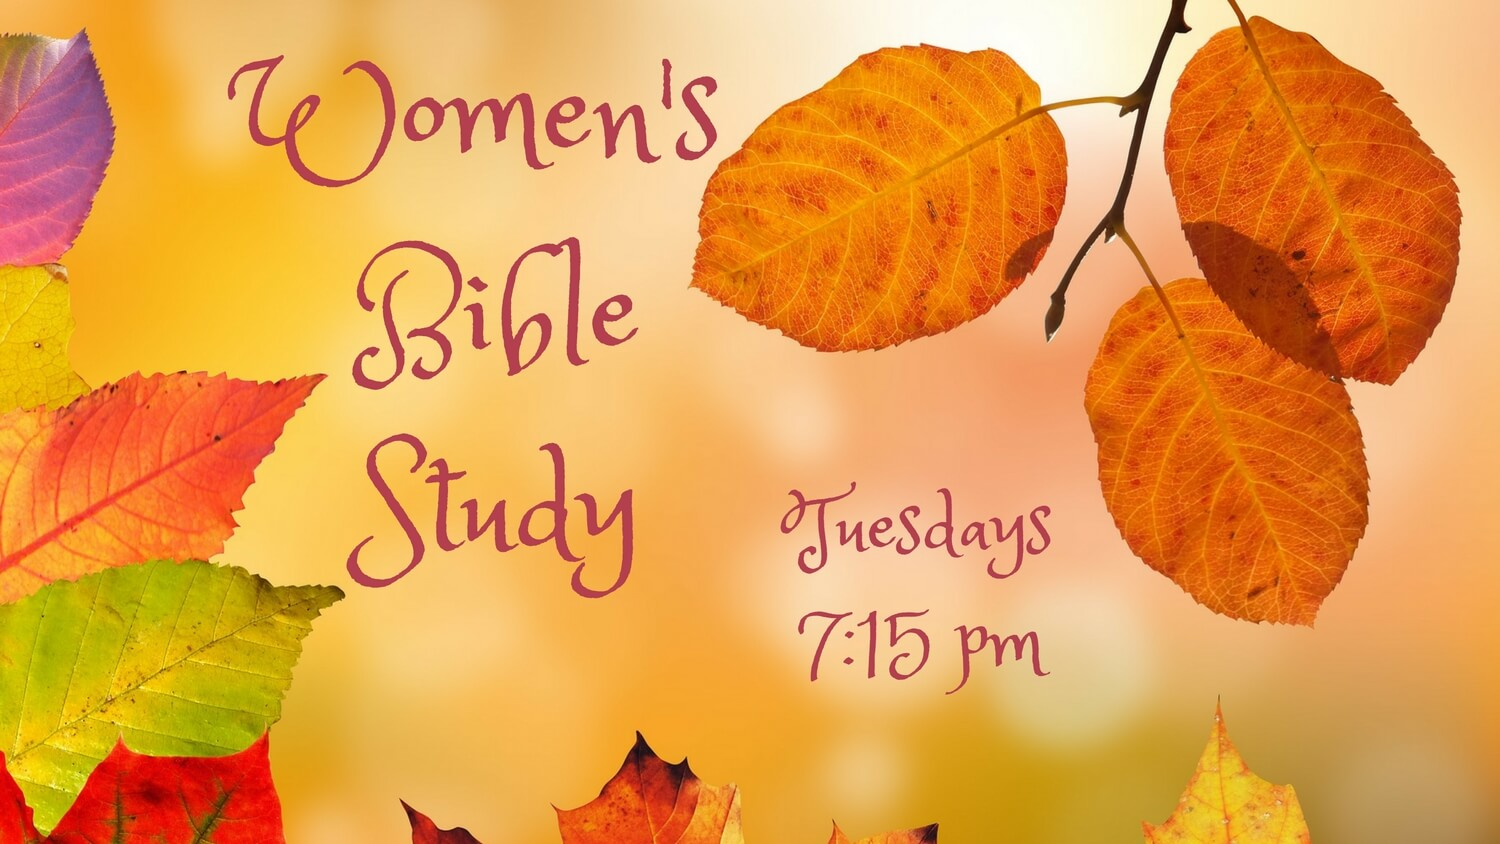 Womens-bible-study-north-kingstown-rhode-island